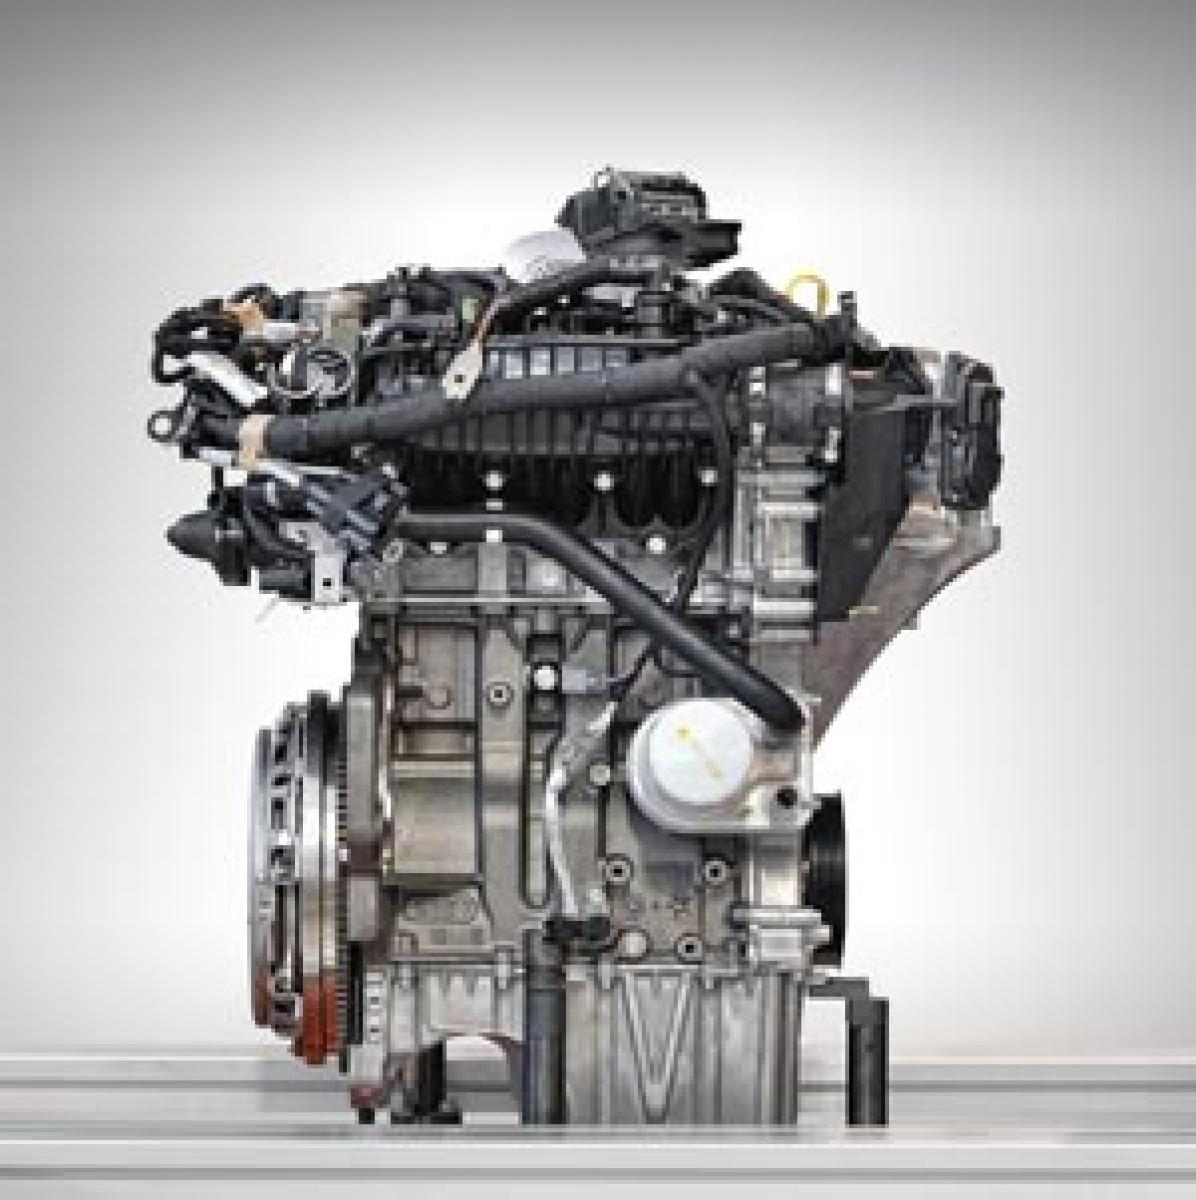 1.0-Liter Ford EcoBoost wins Best Small Engine award